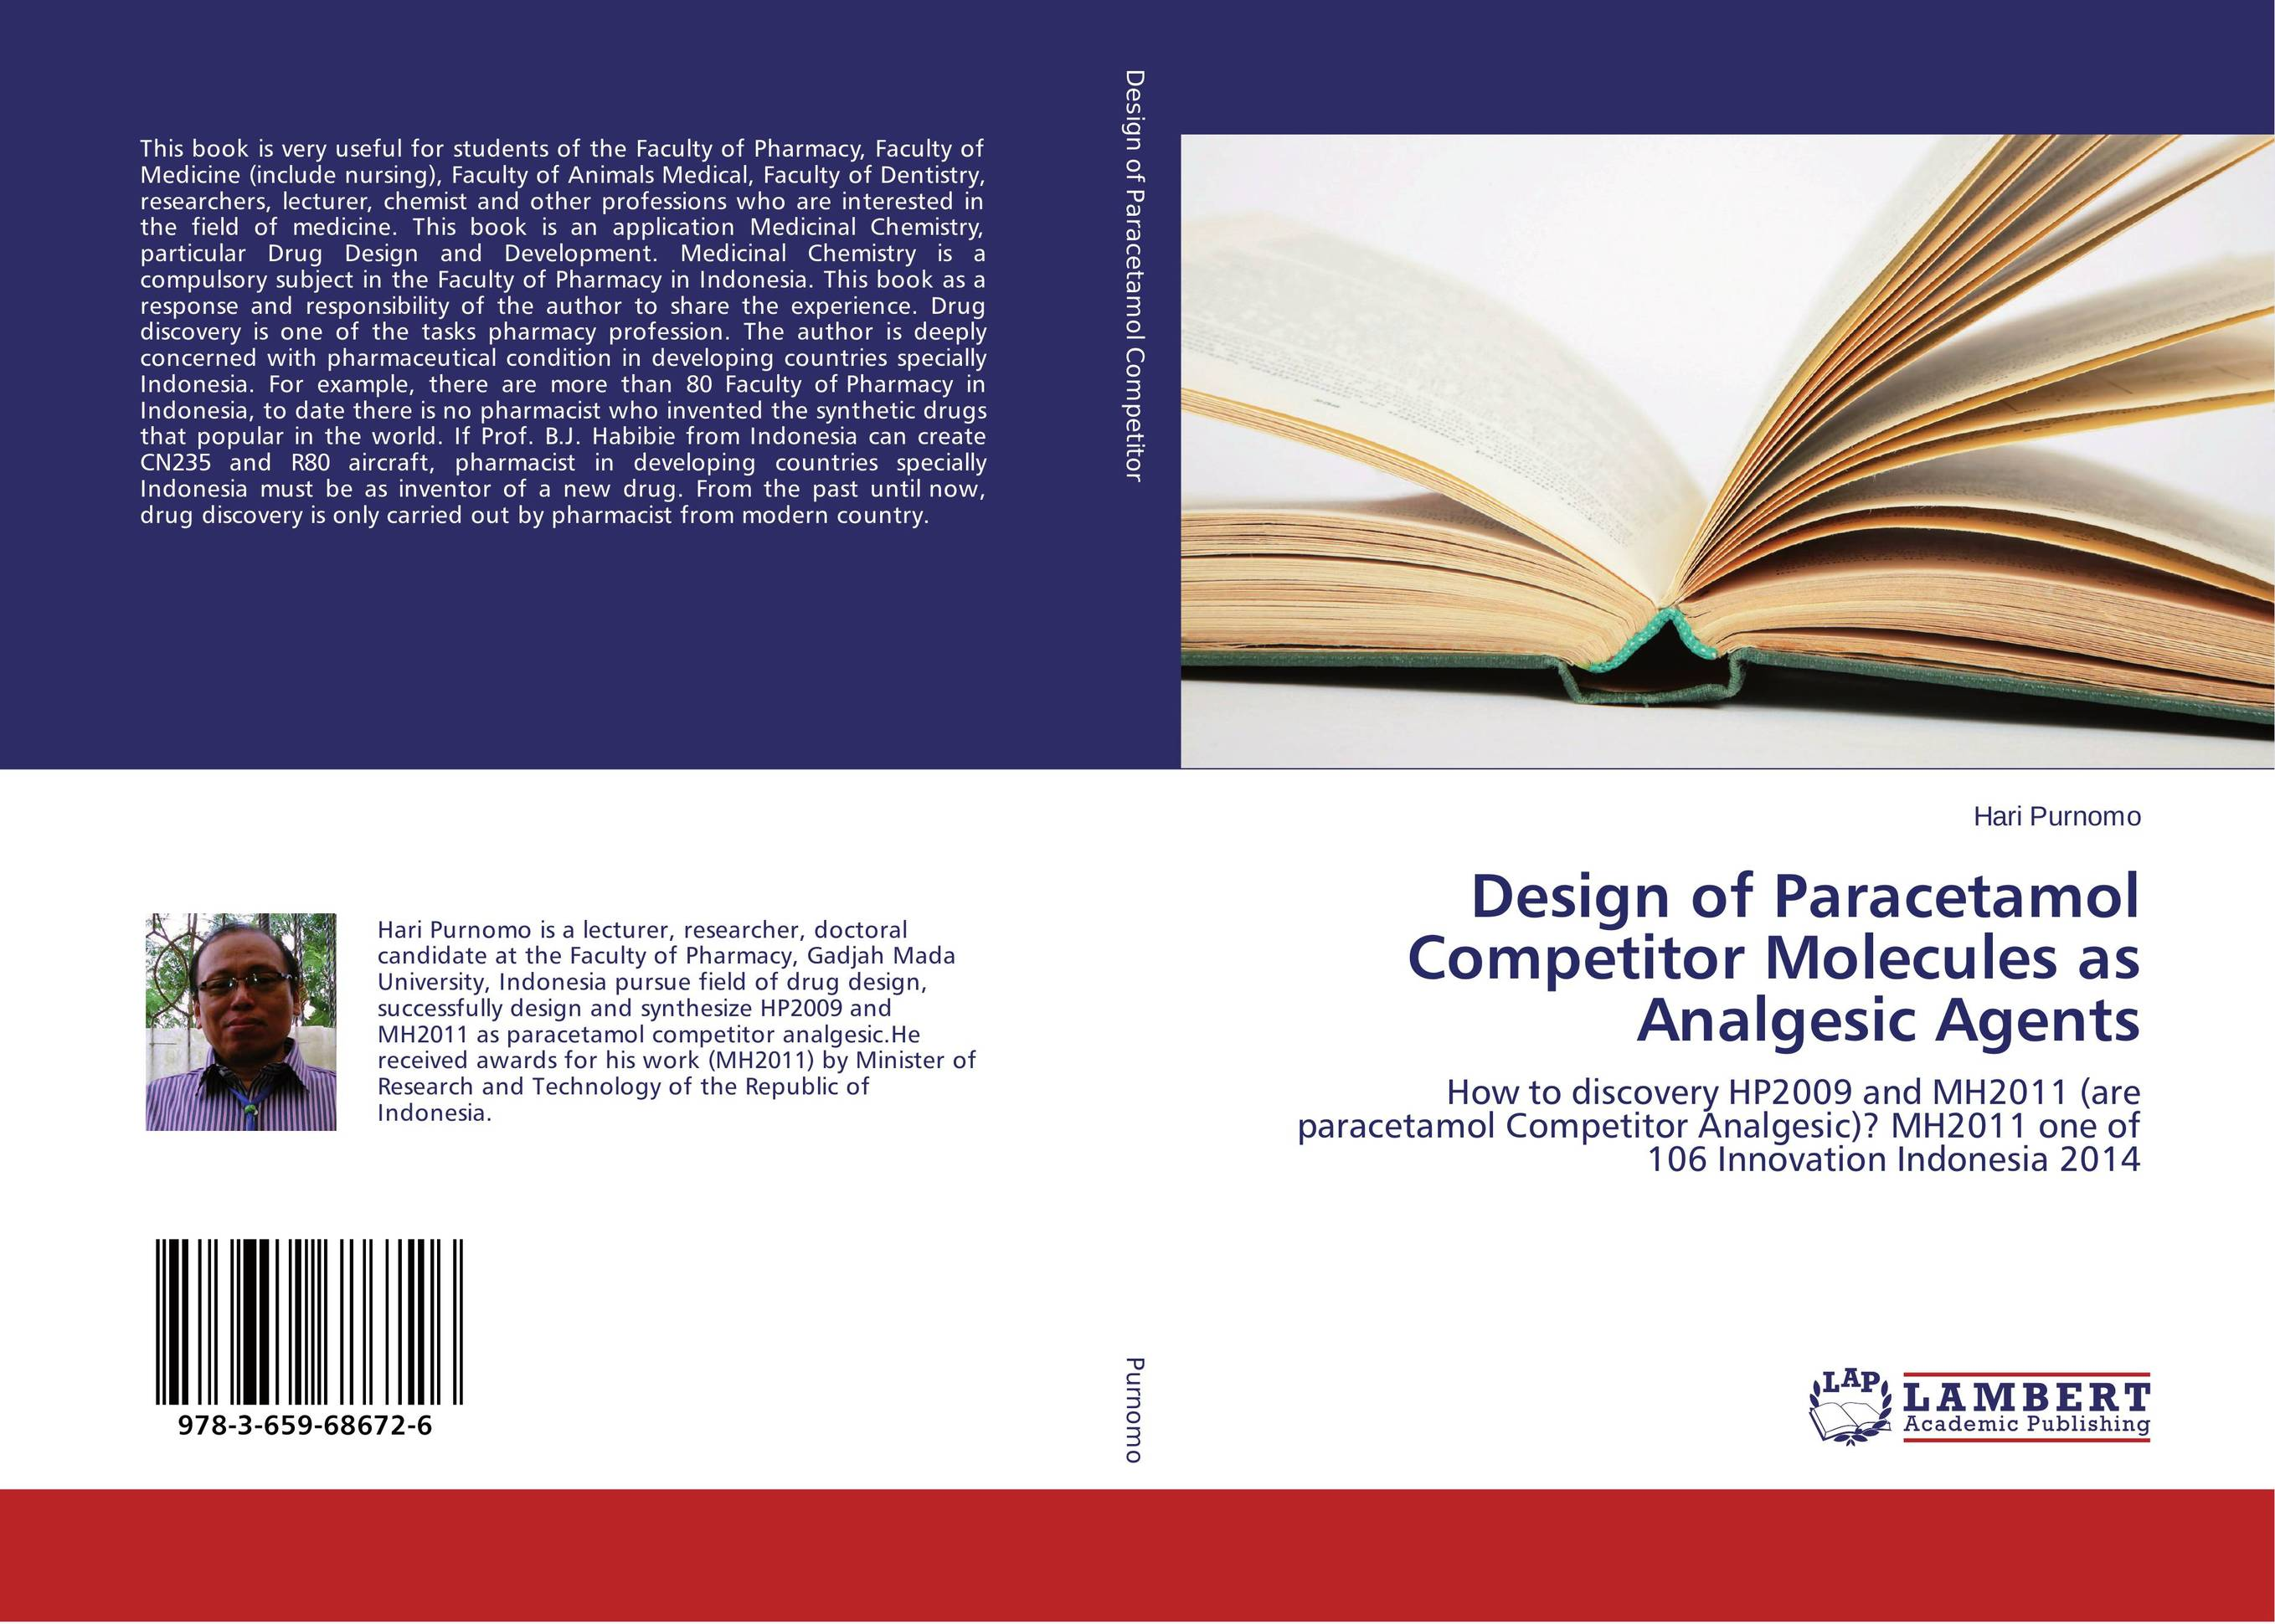 Design of Paracetamol Competitor Molecules as Analgesic Agents drug discovery and design